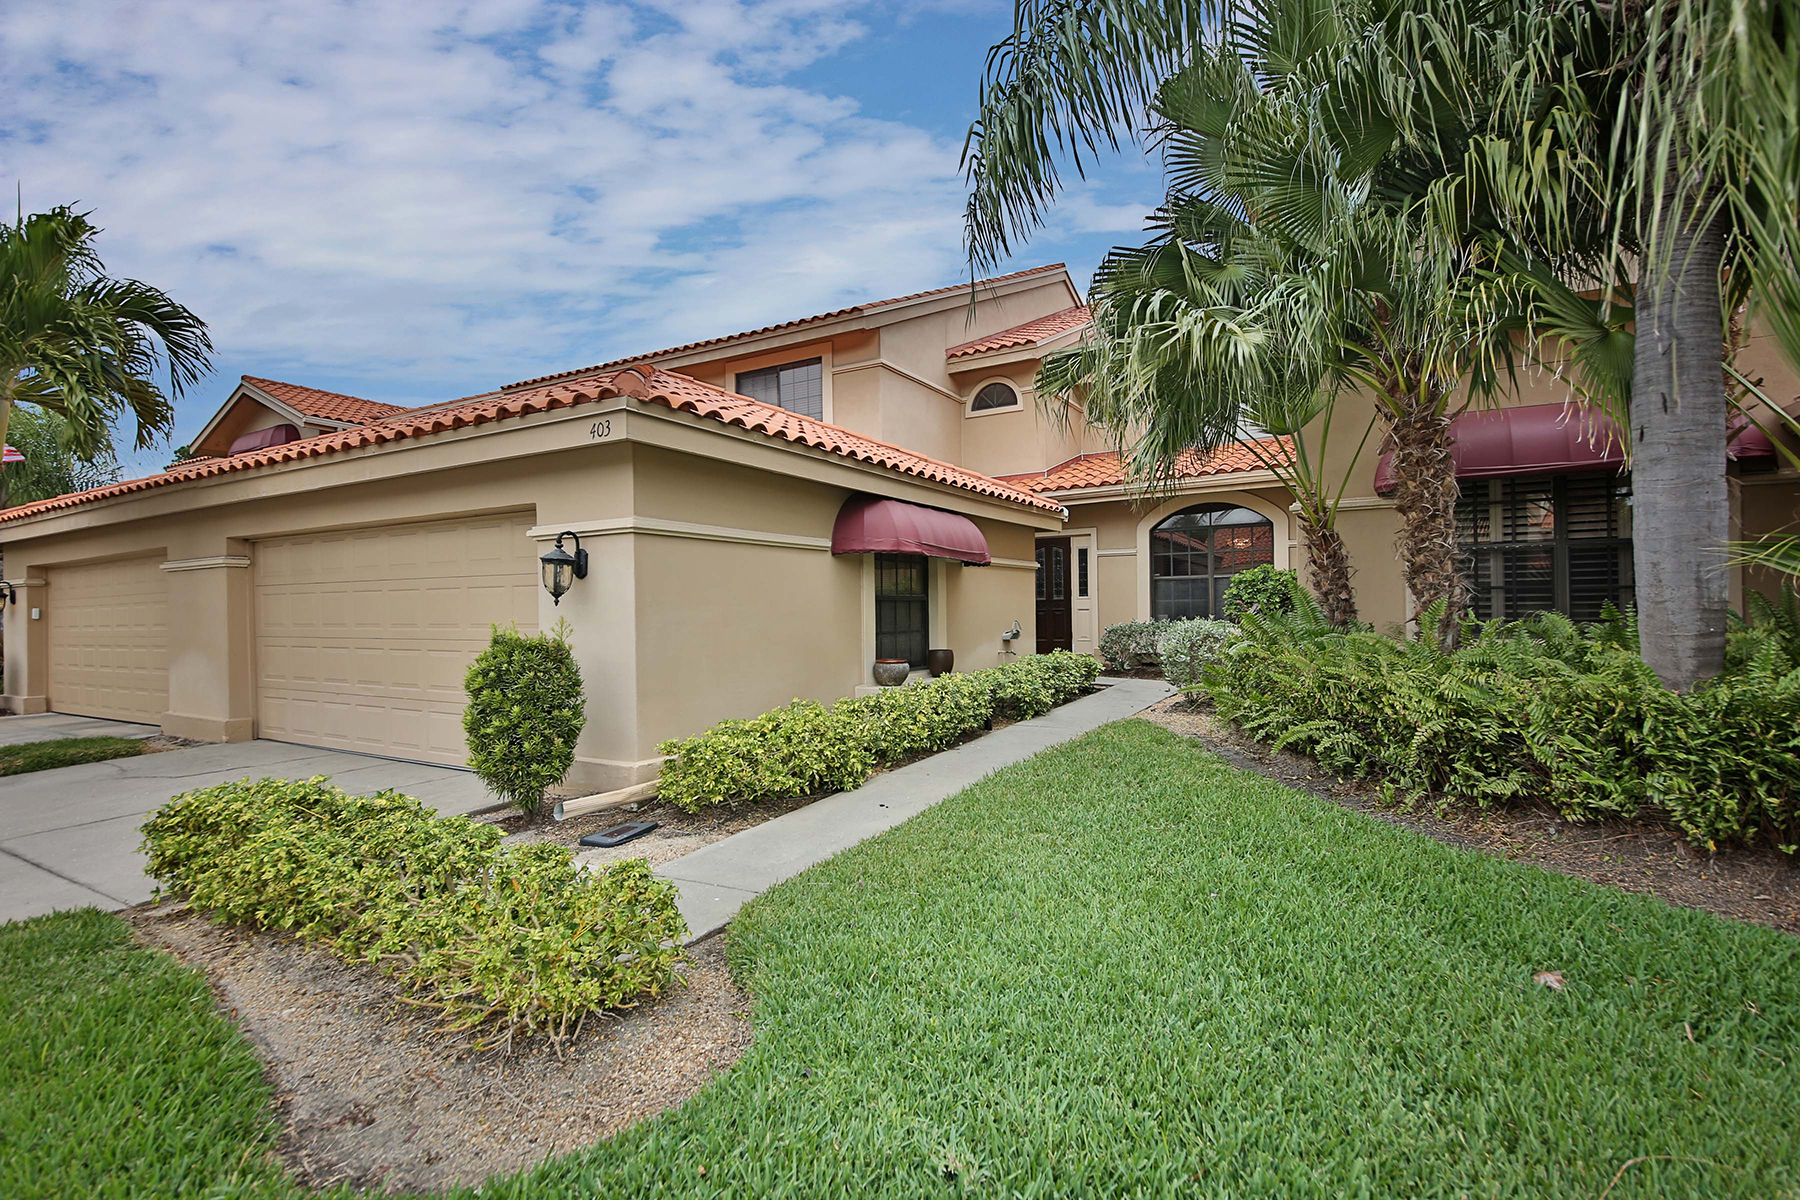 Condominium for Sale at FAIRWAY WOODS - THE FOREST 16410 Fairway Woods Dr 403, Fort Myers, Florida 33908 United States